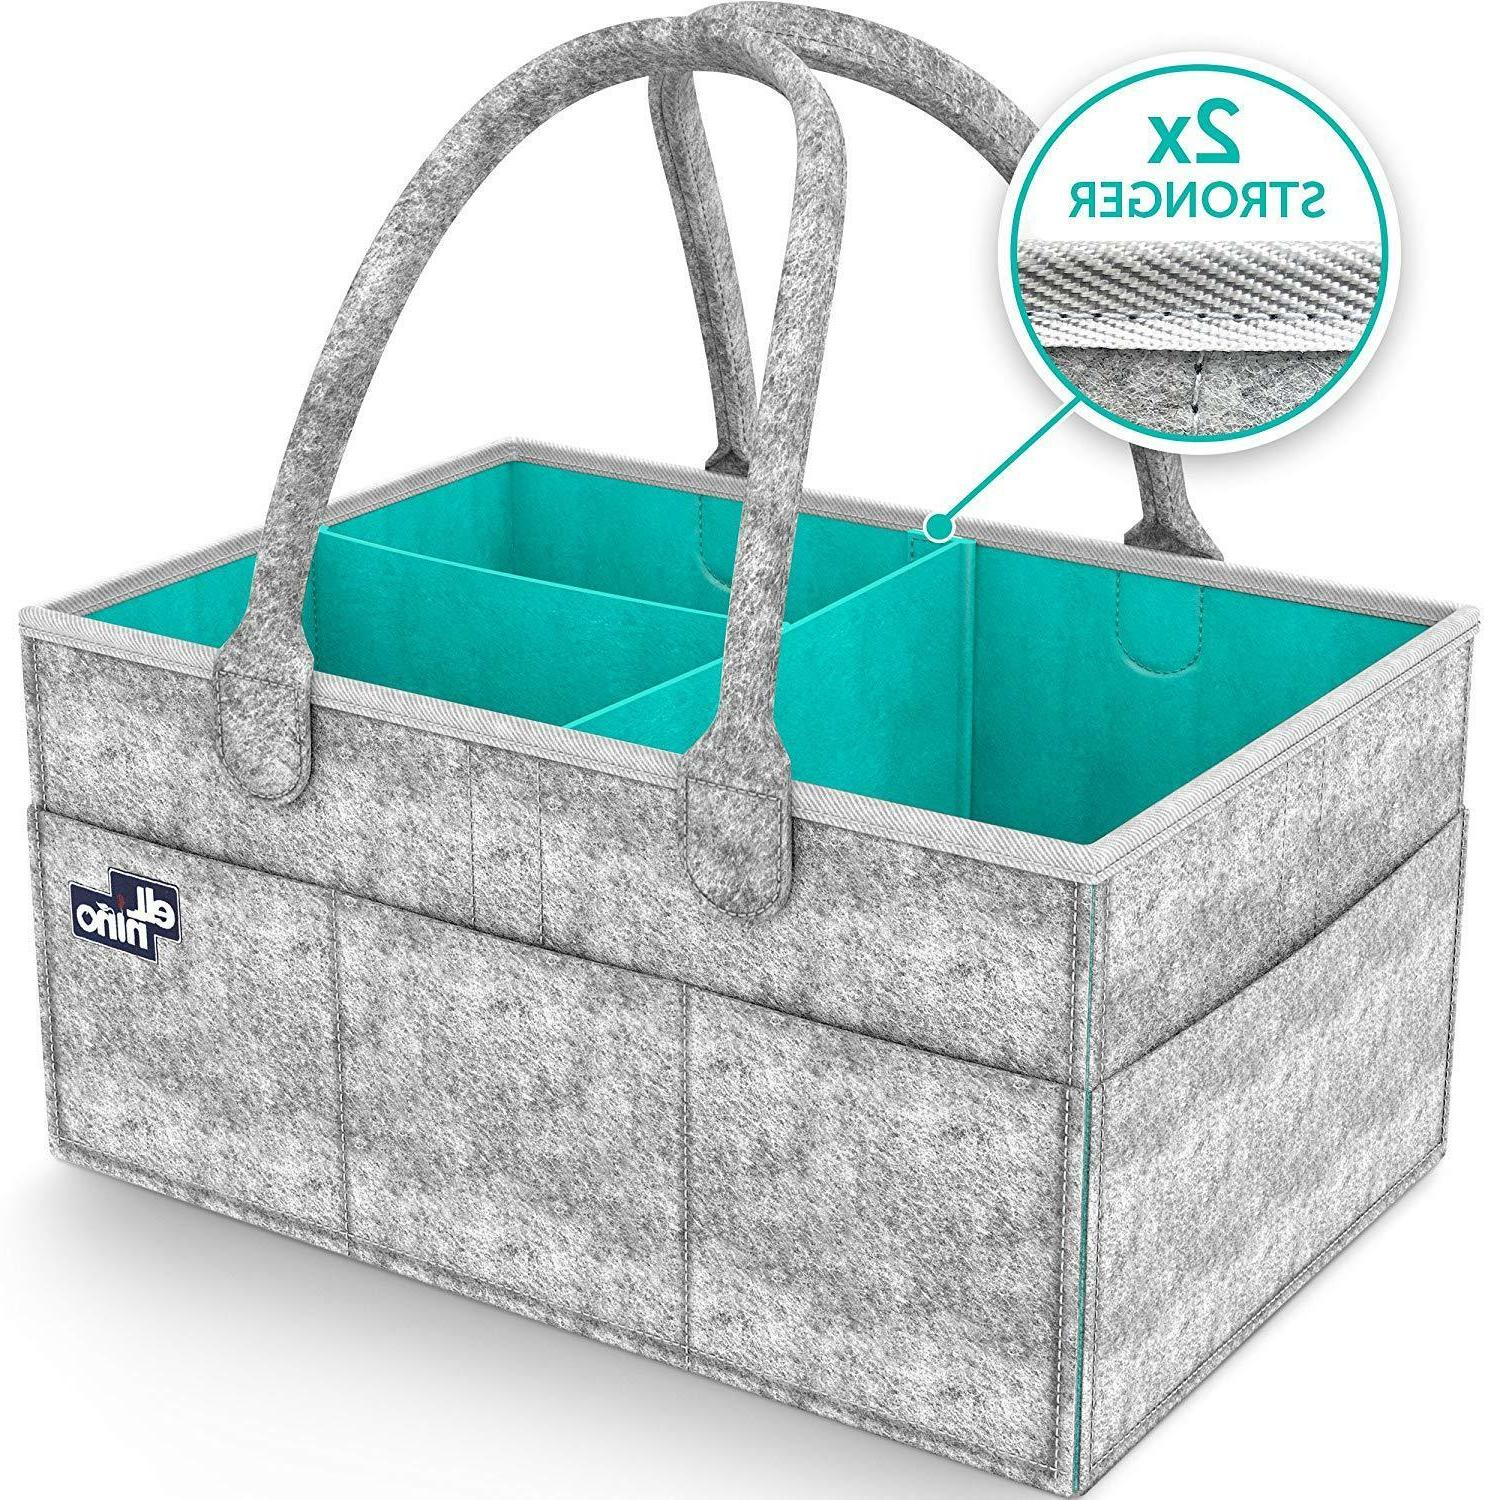 Diaper Caddy Nursery Storage Baby Organizer Basket Nappy Bin